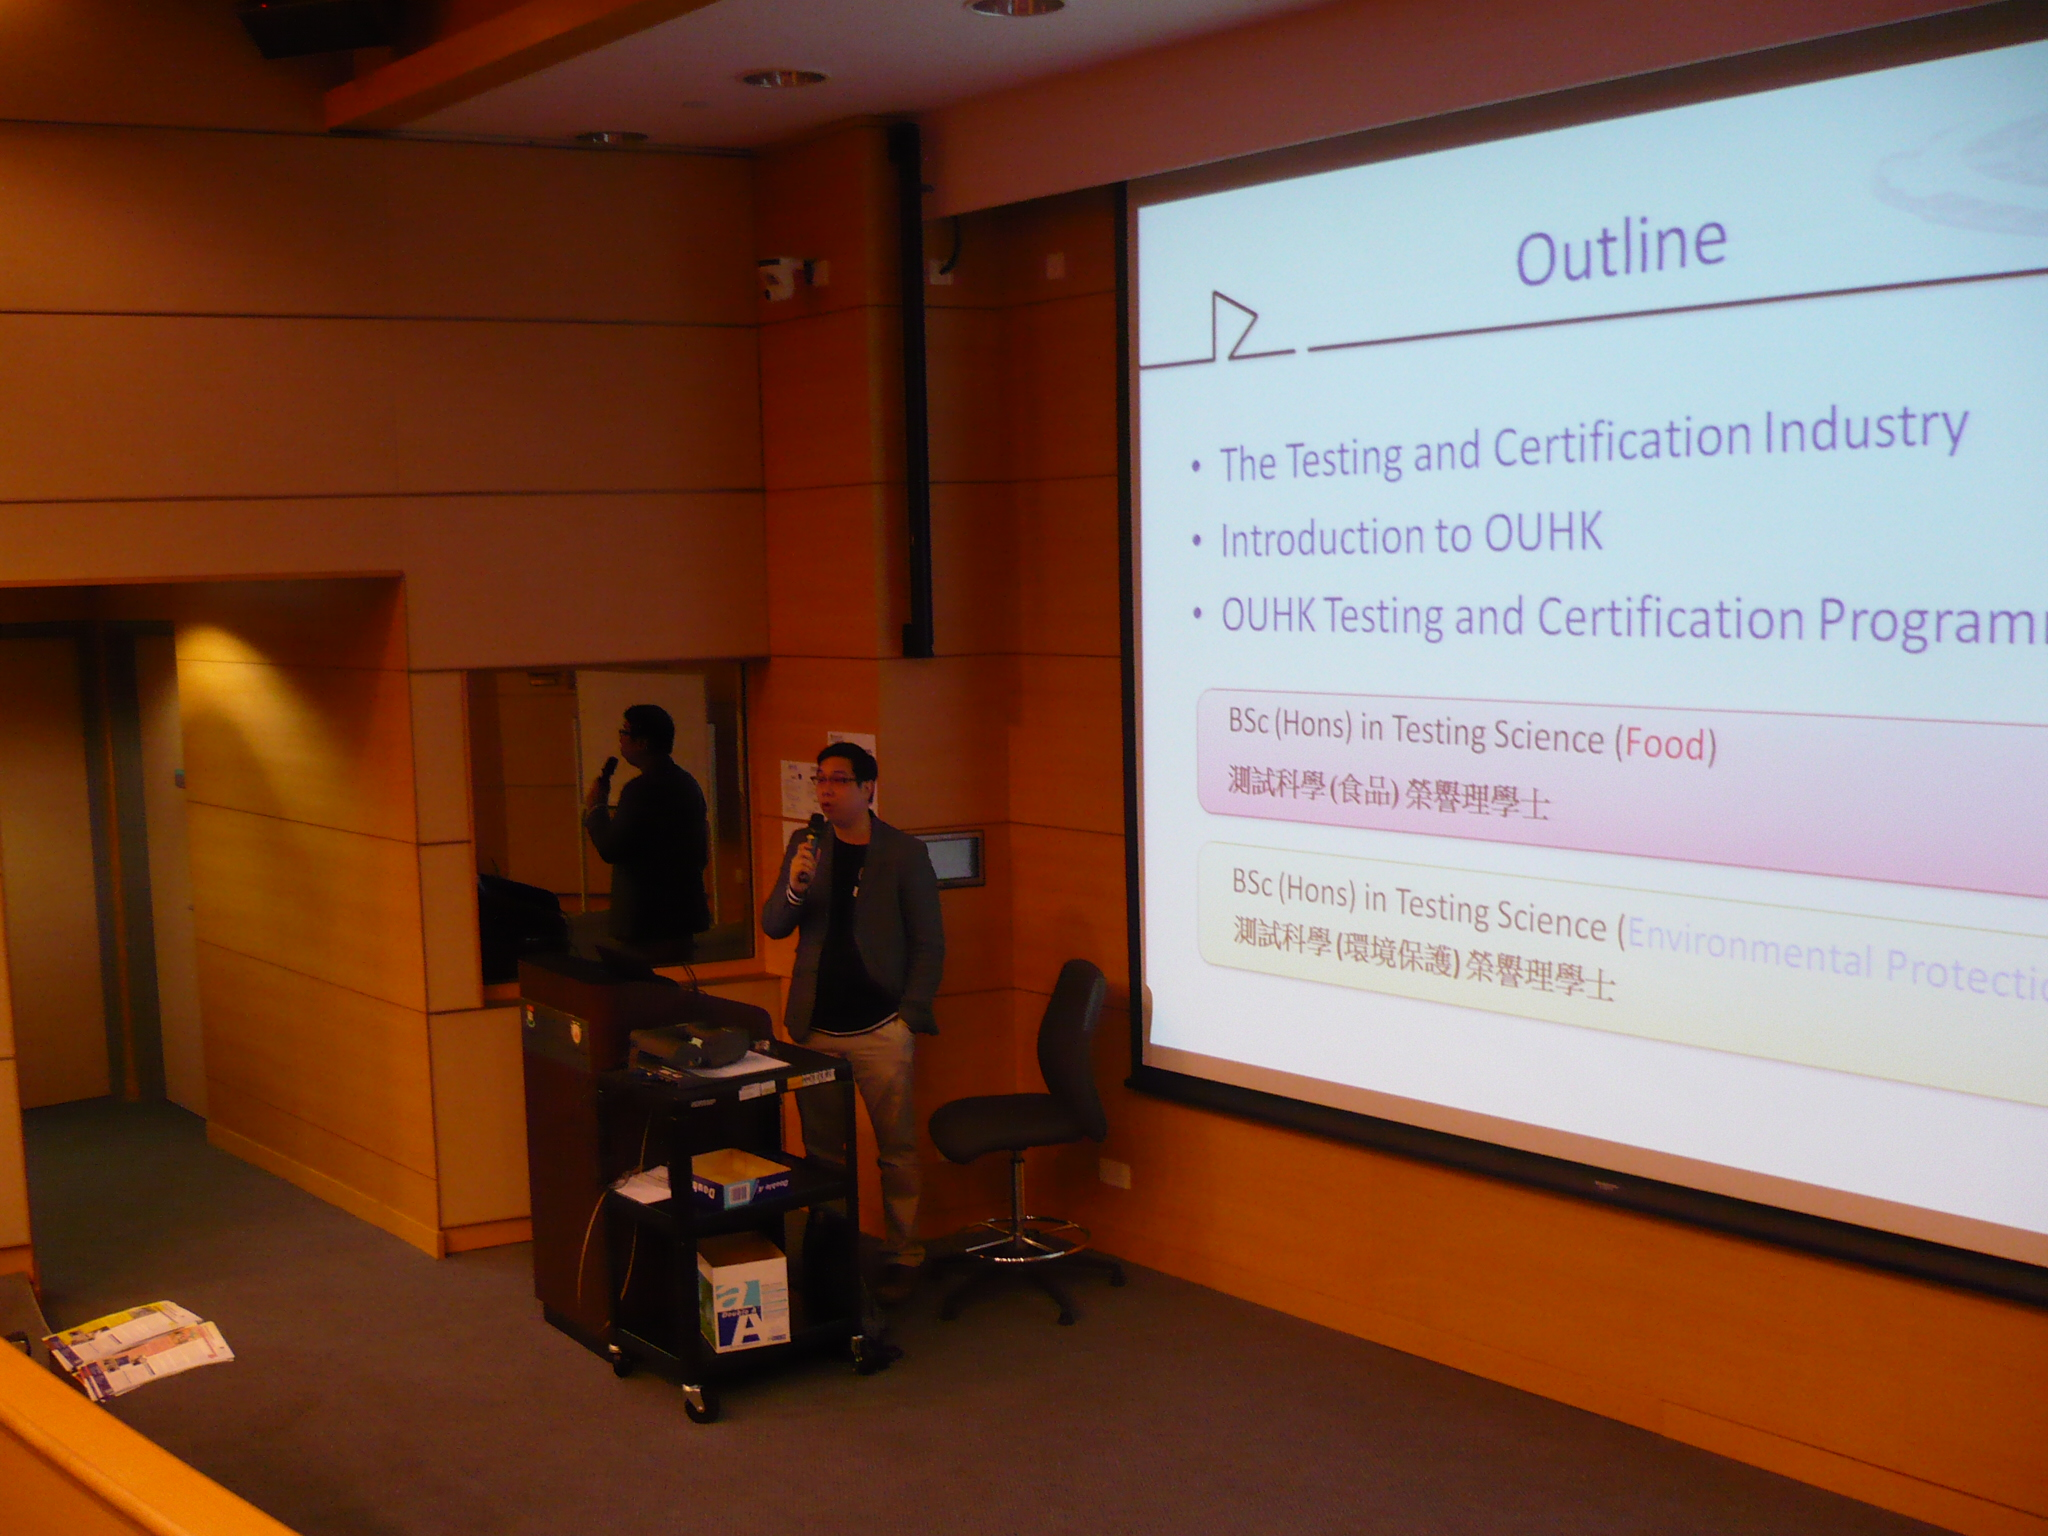 Admission Talk on Testing Science Programmes Offered by the OUHK - Photo - 1